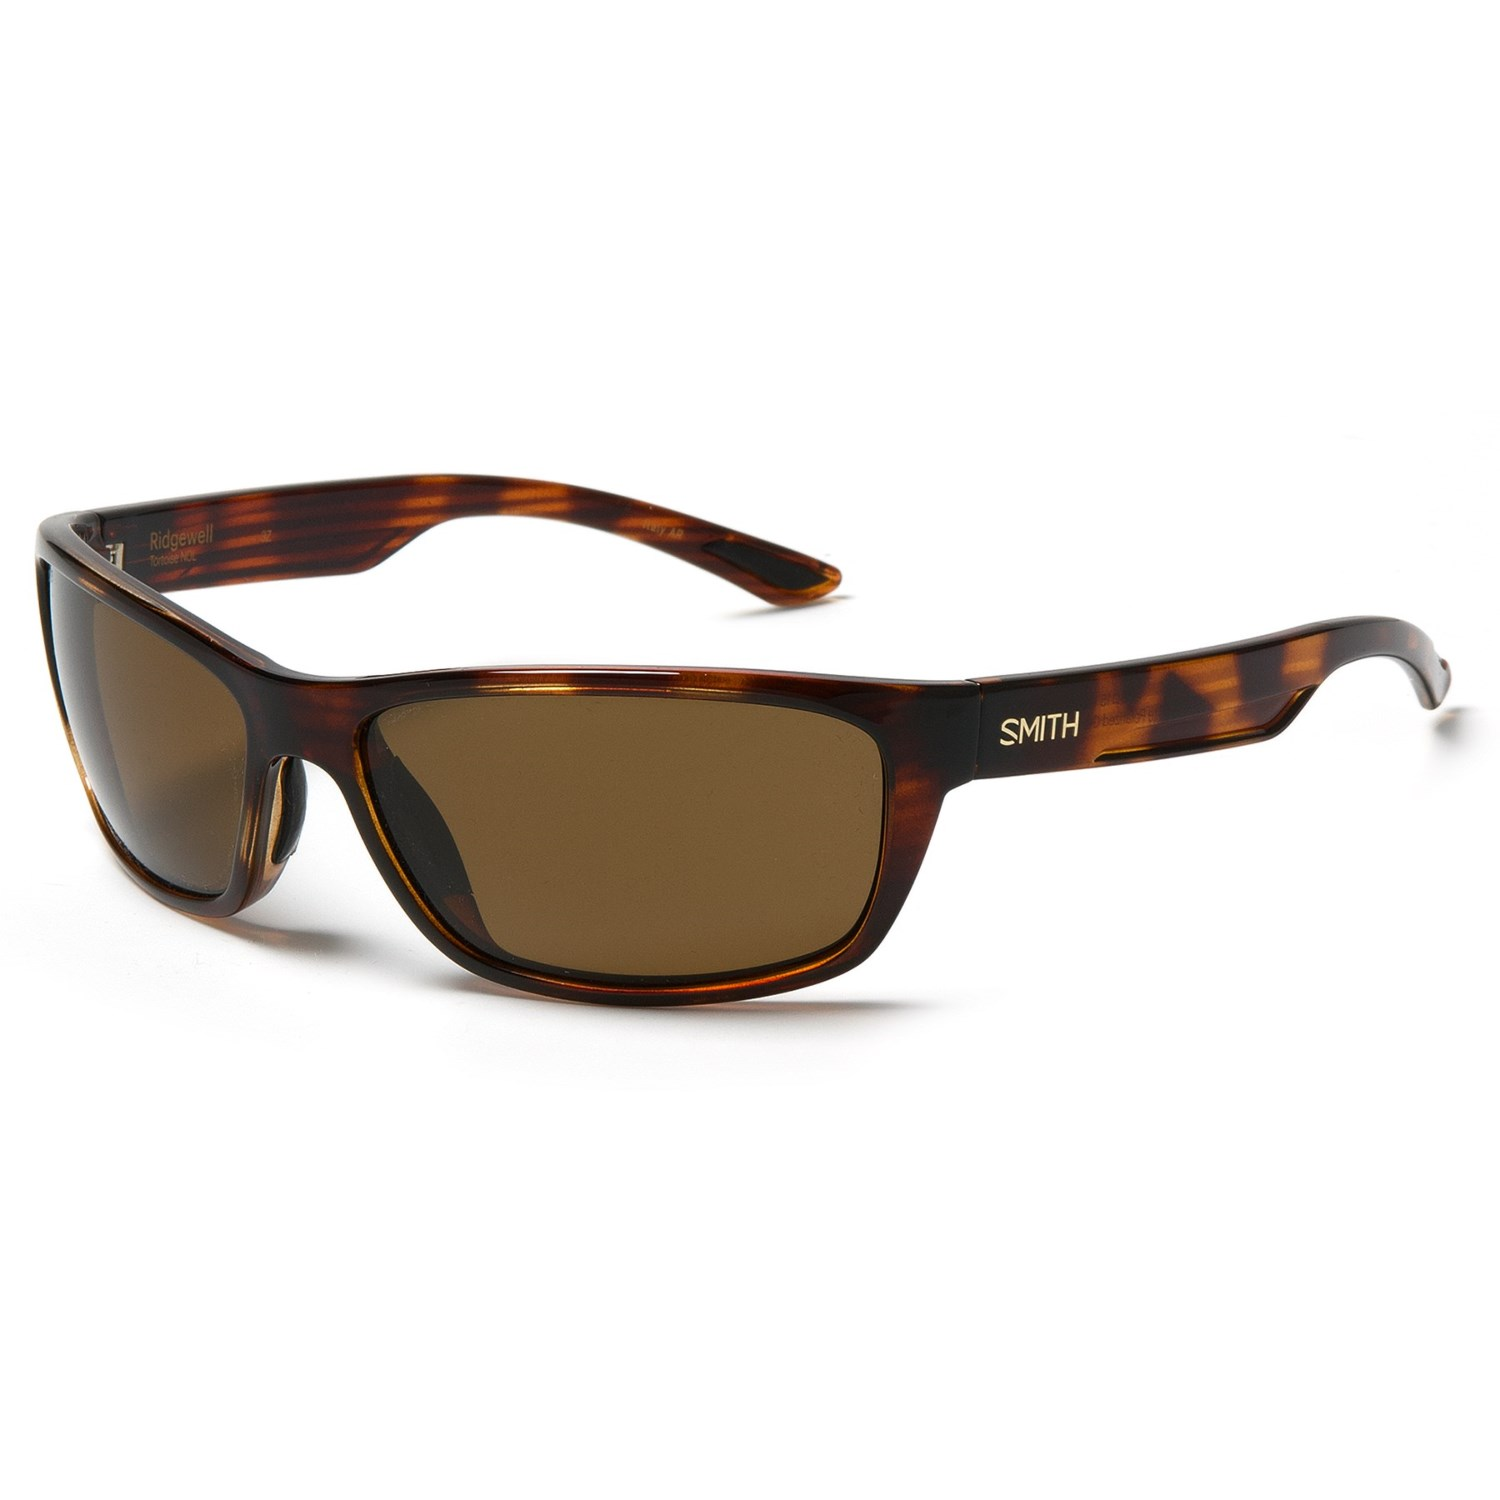 a2cdee9808 Smith Optics Ridgewell Sunglasses - Polarized Techlite Glass Lenses in  Tortoise Brown. Tap to expand